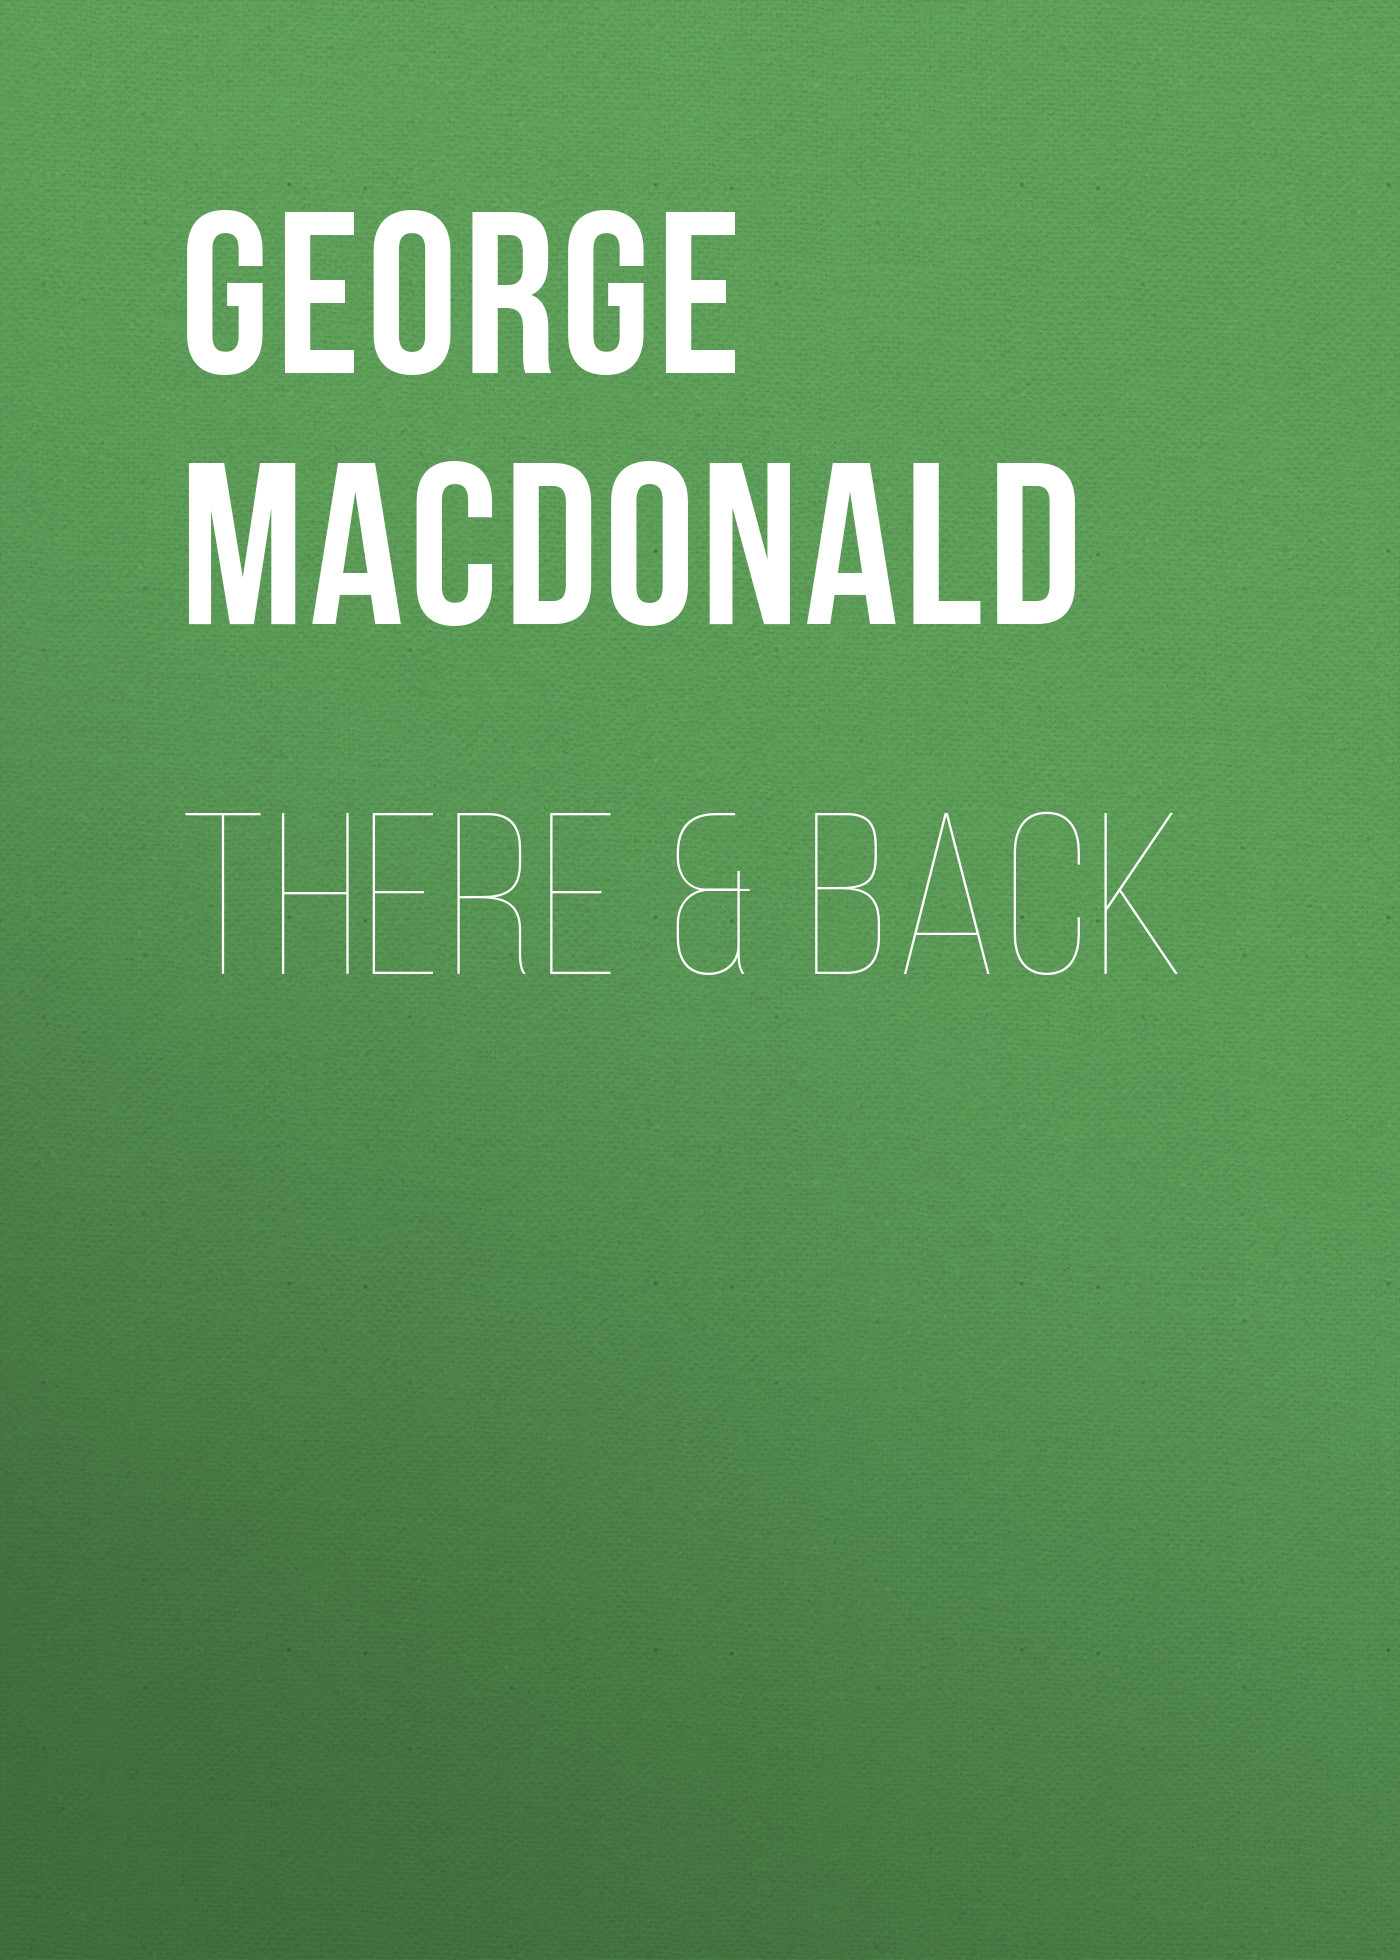 все цены на George MacDonald There & Back онлайн